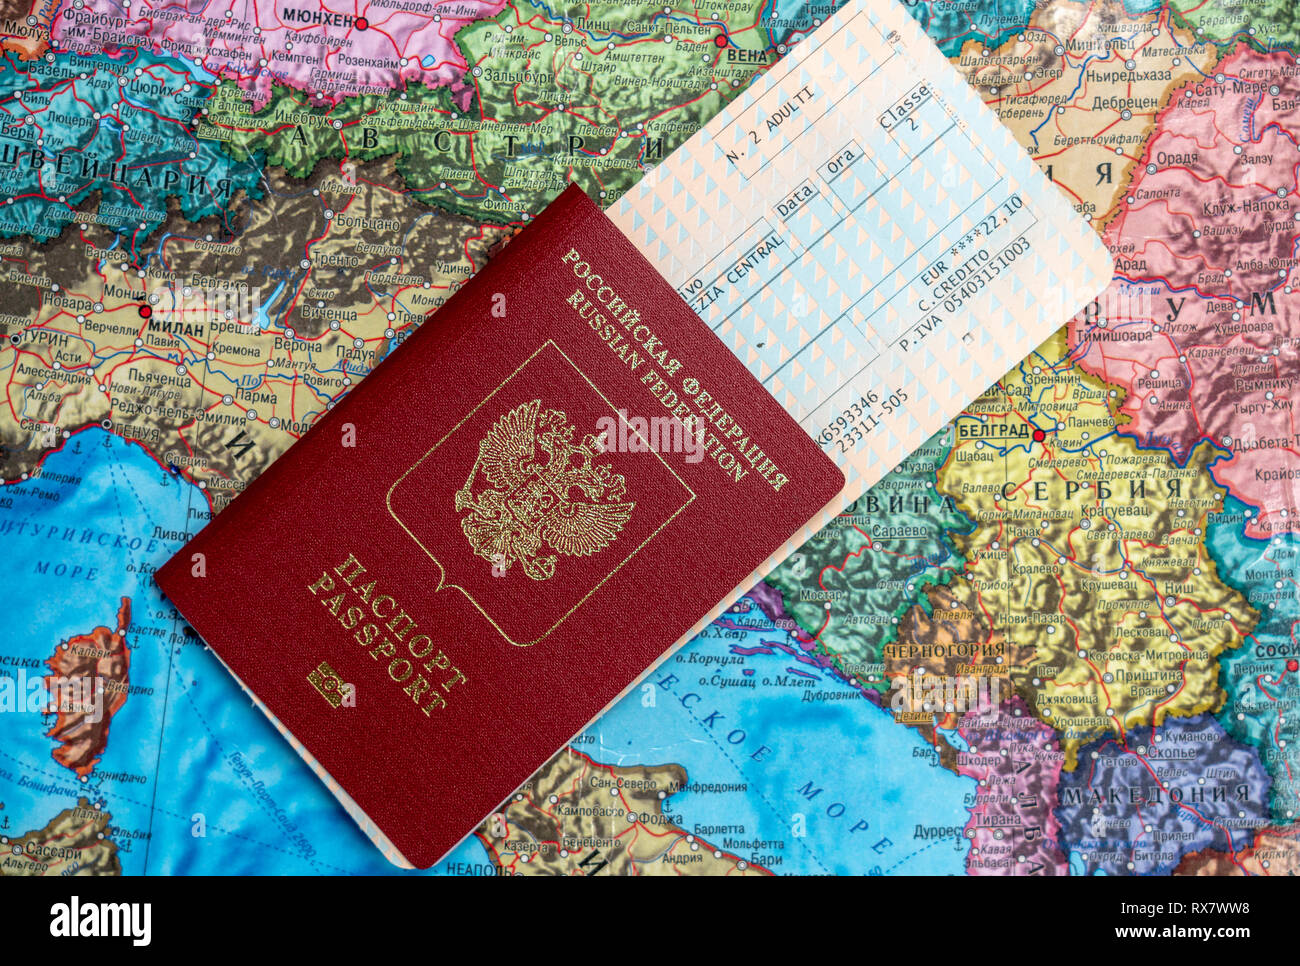 Trip Travel Preparing For The Trip Travel On The Map Is A Passport And